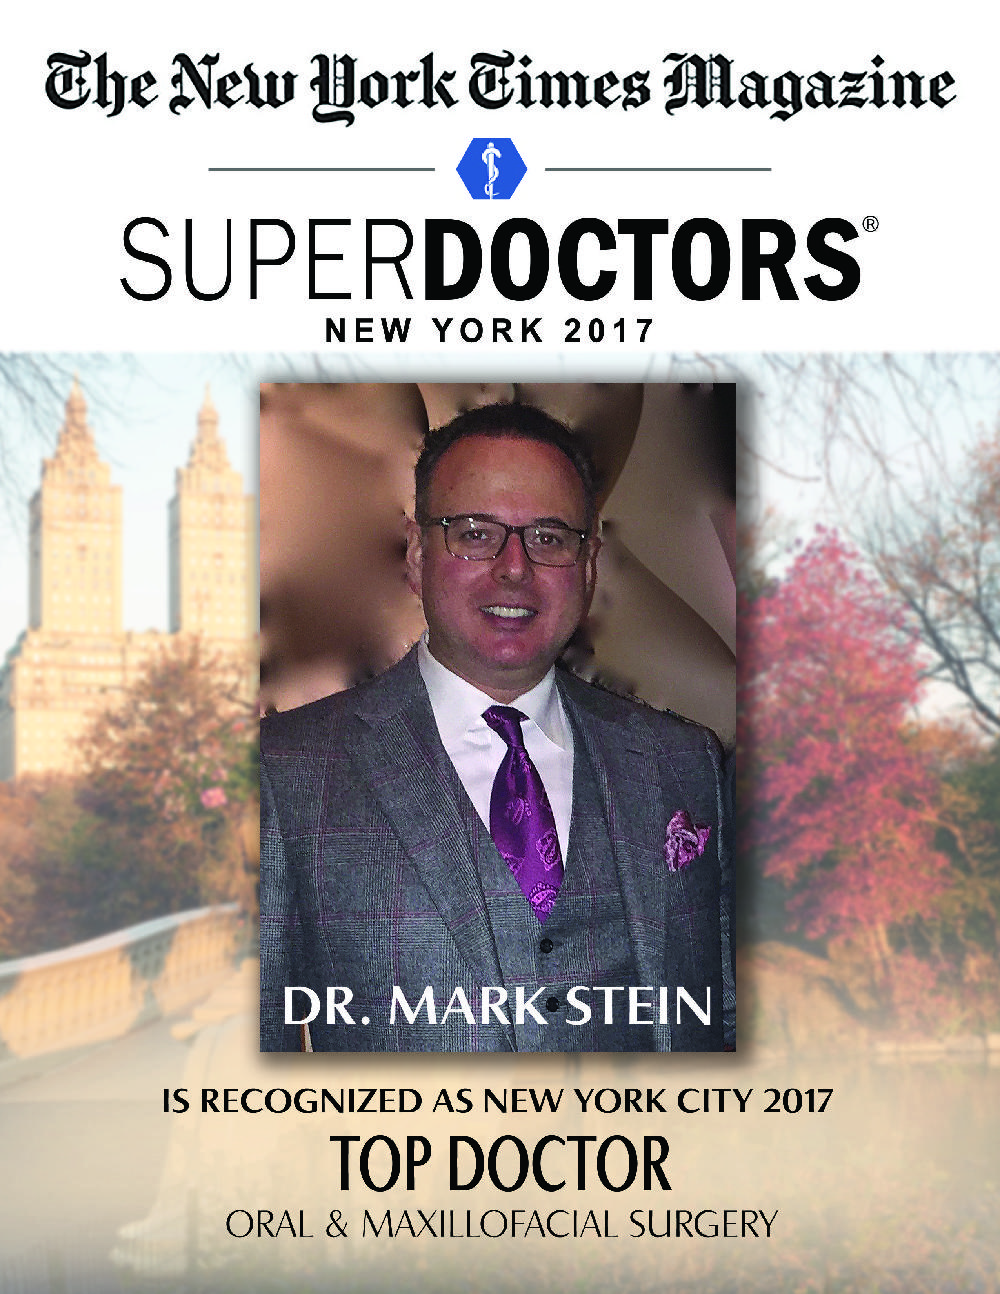 Dr. Mark Stein named NY Times Magazine Super Doctor 2017 for NYC